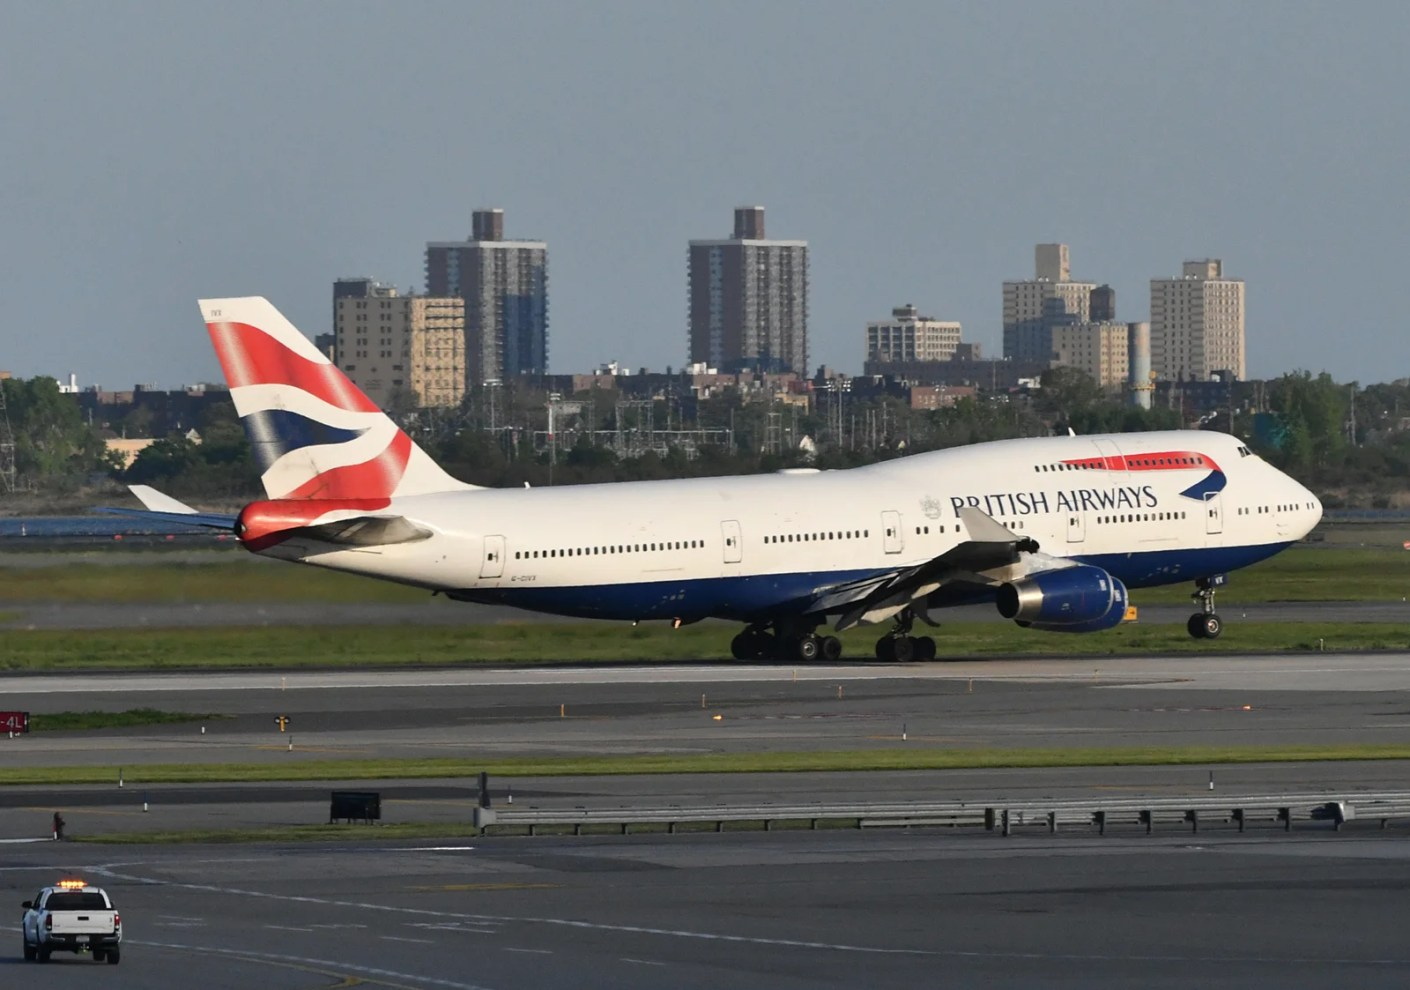 British Airways 747 taking off from JFK seen from a room at the TWA Hotel